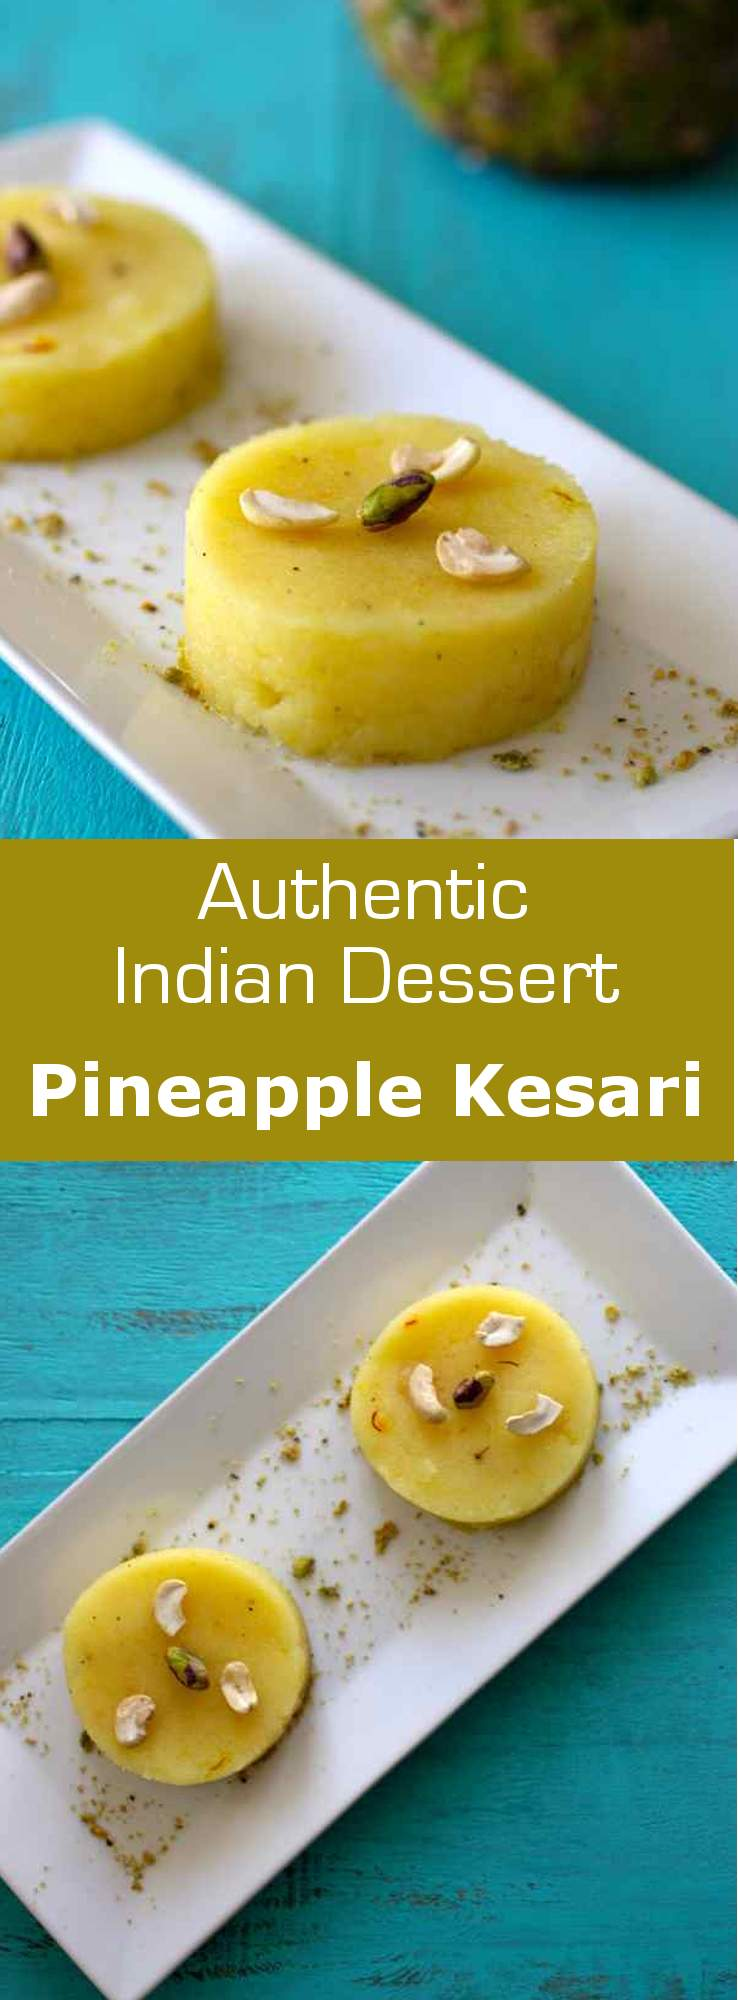 Pineapple kesari is a type of Indian semolina porridge (rava kesari) flavored with cardamom, saffron and pineapple. #vegetarian #glutenfree #dessert #india